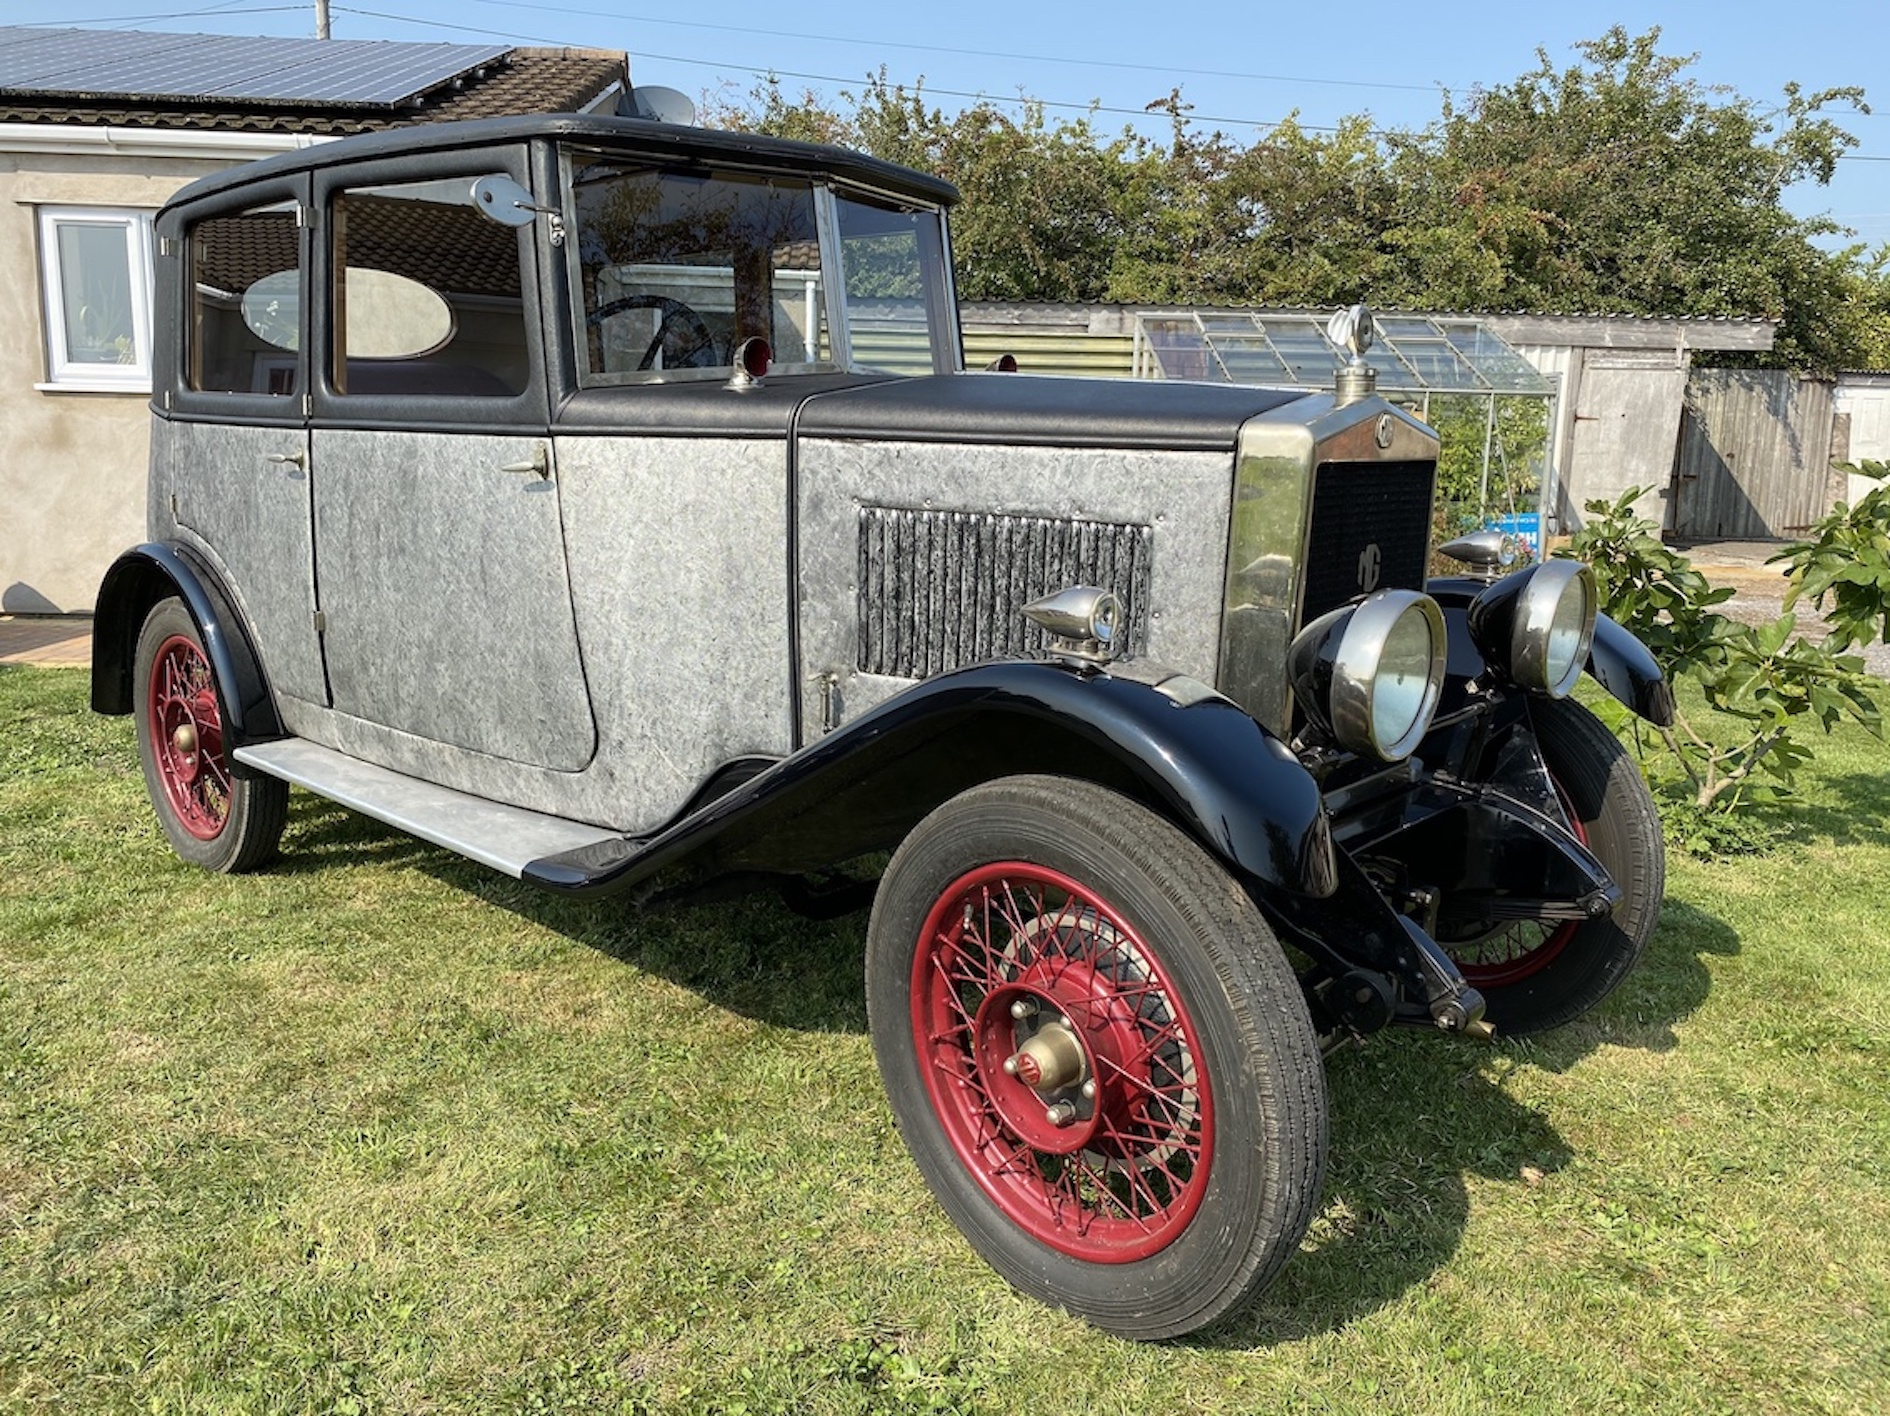 Famous Mg That Lent Its Name To British Beer Brand Going To Auction photo